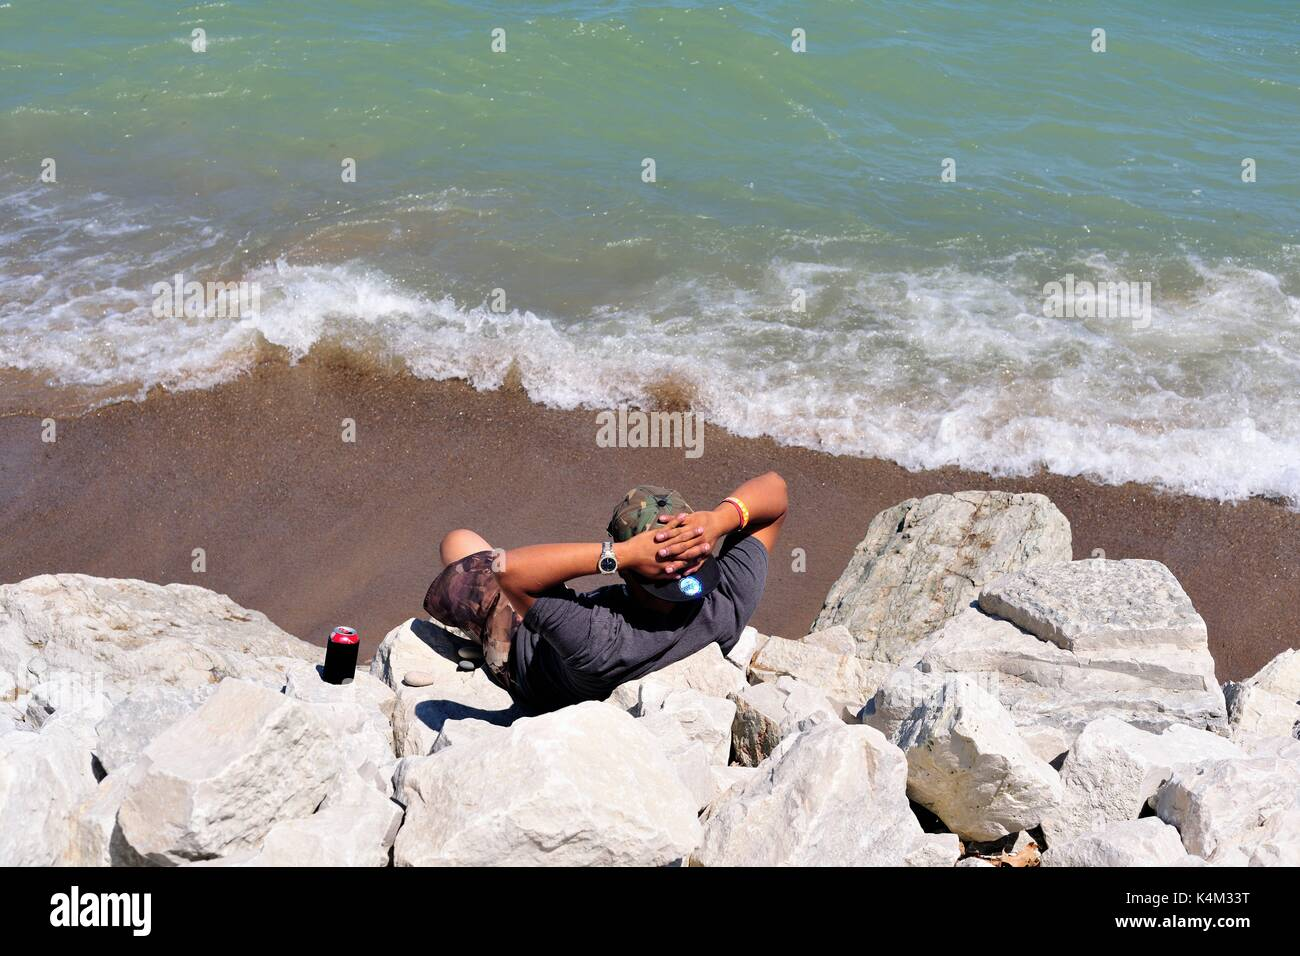 Zion, Illinois, USA. A lone man sitting among the rocks well above a beach at Illinois Beach State Park. - Stock Image